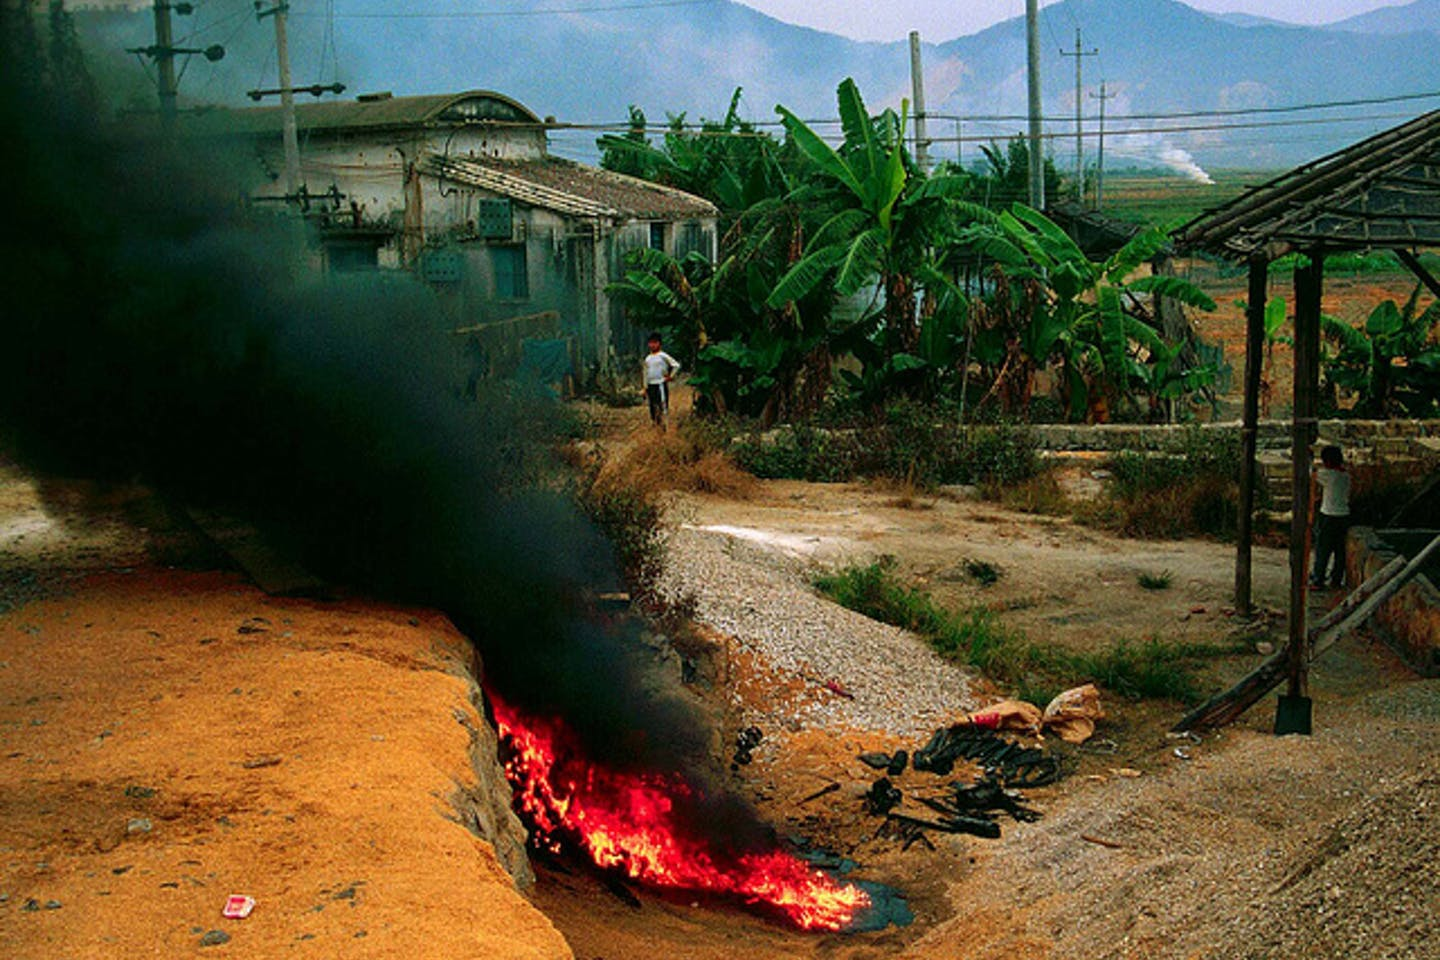 open burning of plastic in China